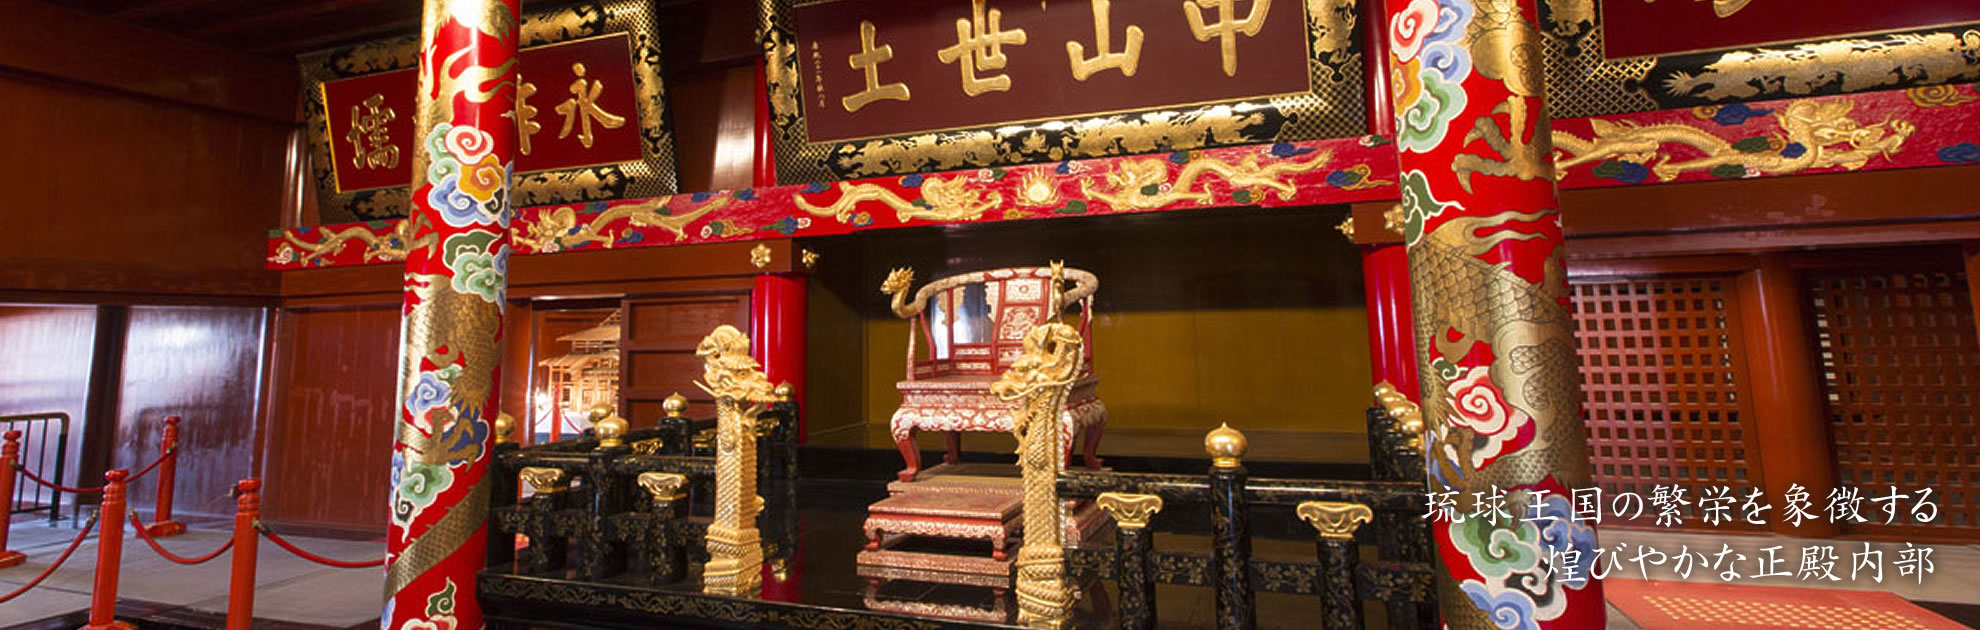 The gorgeous Tadashi inside that symbolizes reflection of Ryukyu kingdom